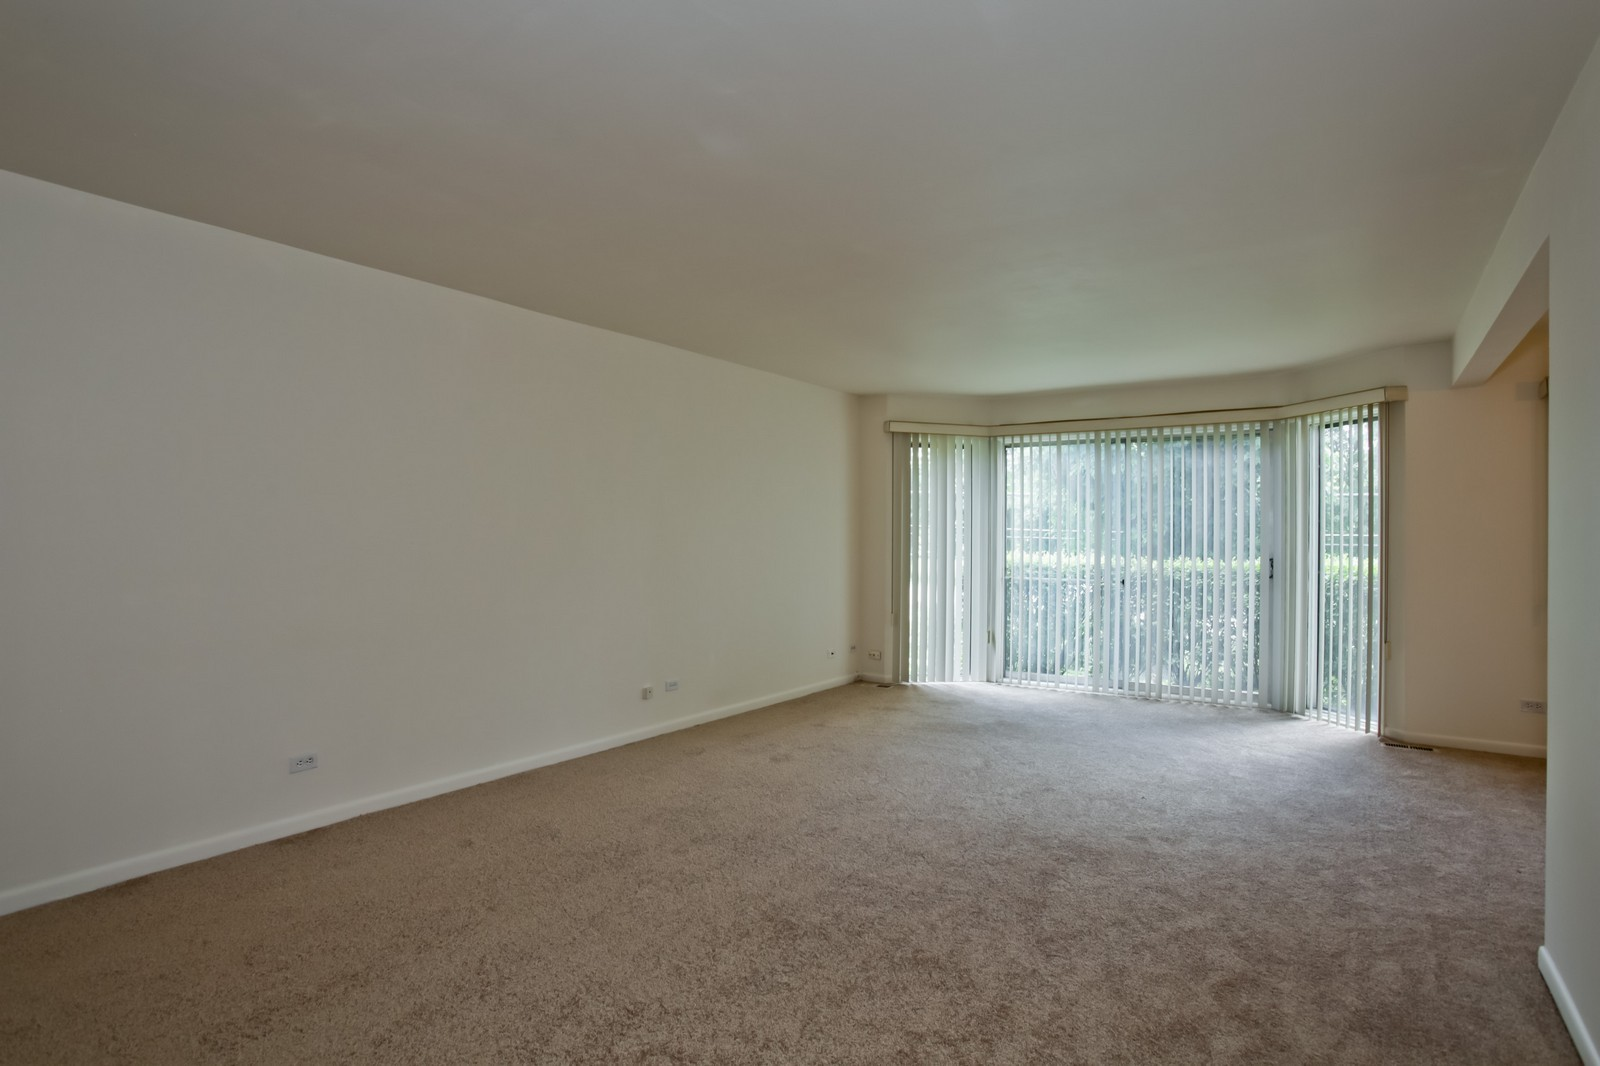 Real Estate Photography - 2811 Hobson Rd, Unit 3, Woodridge, IL, 60517 - Living Room